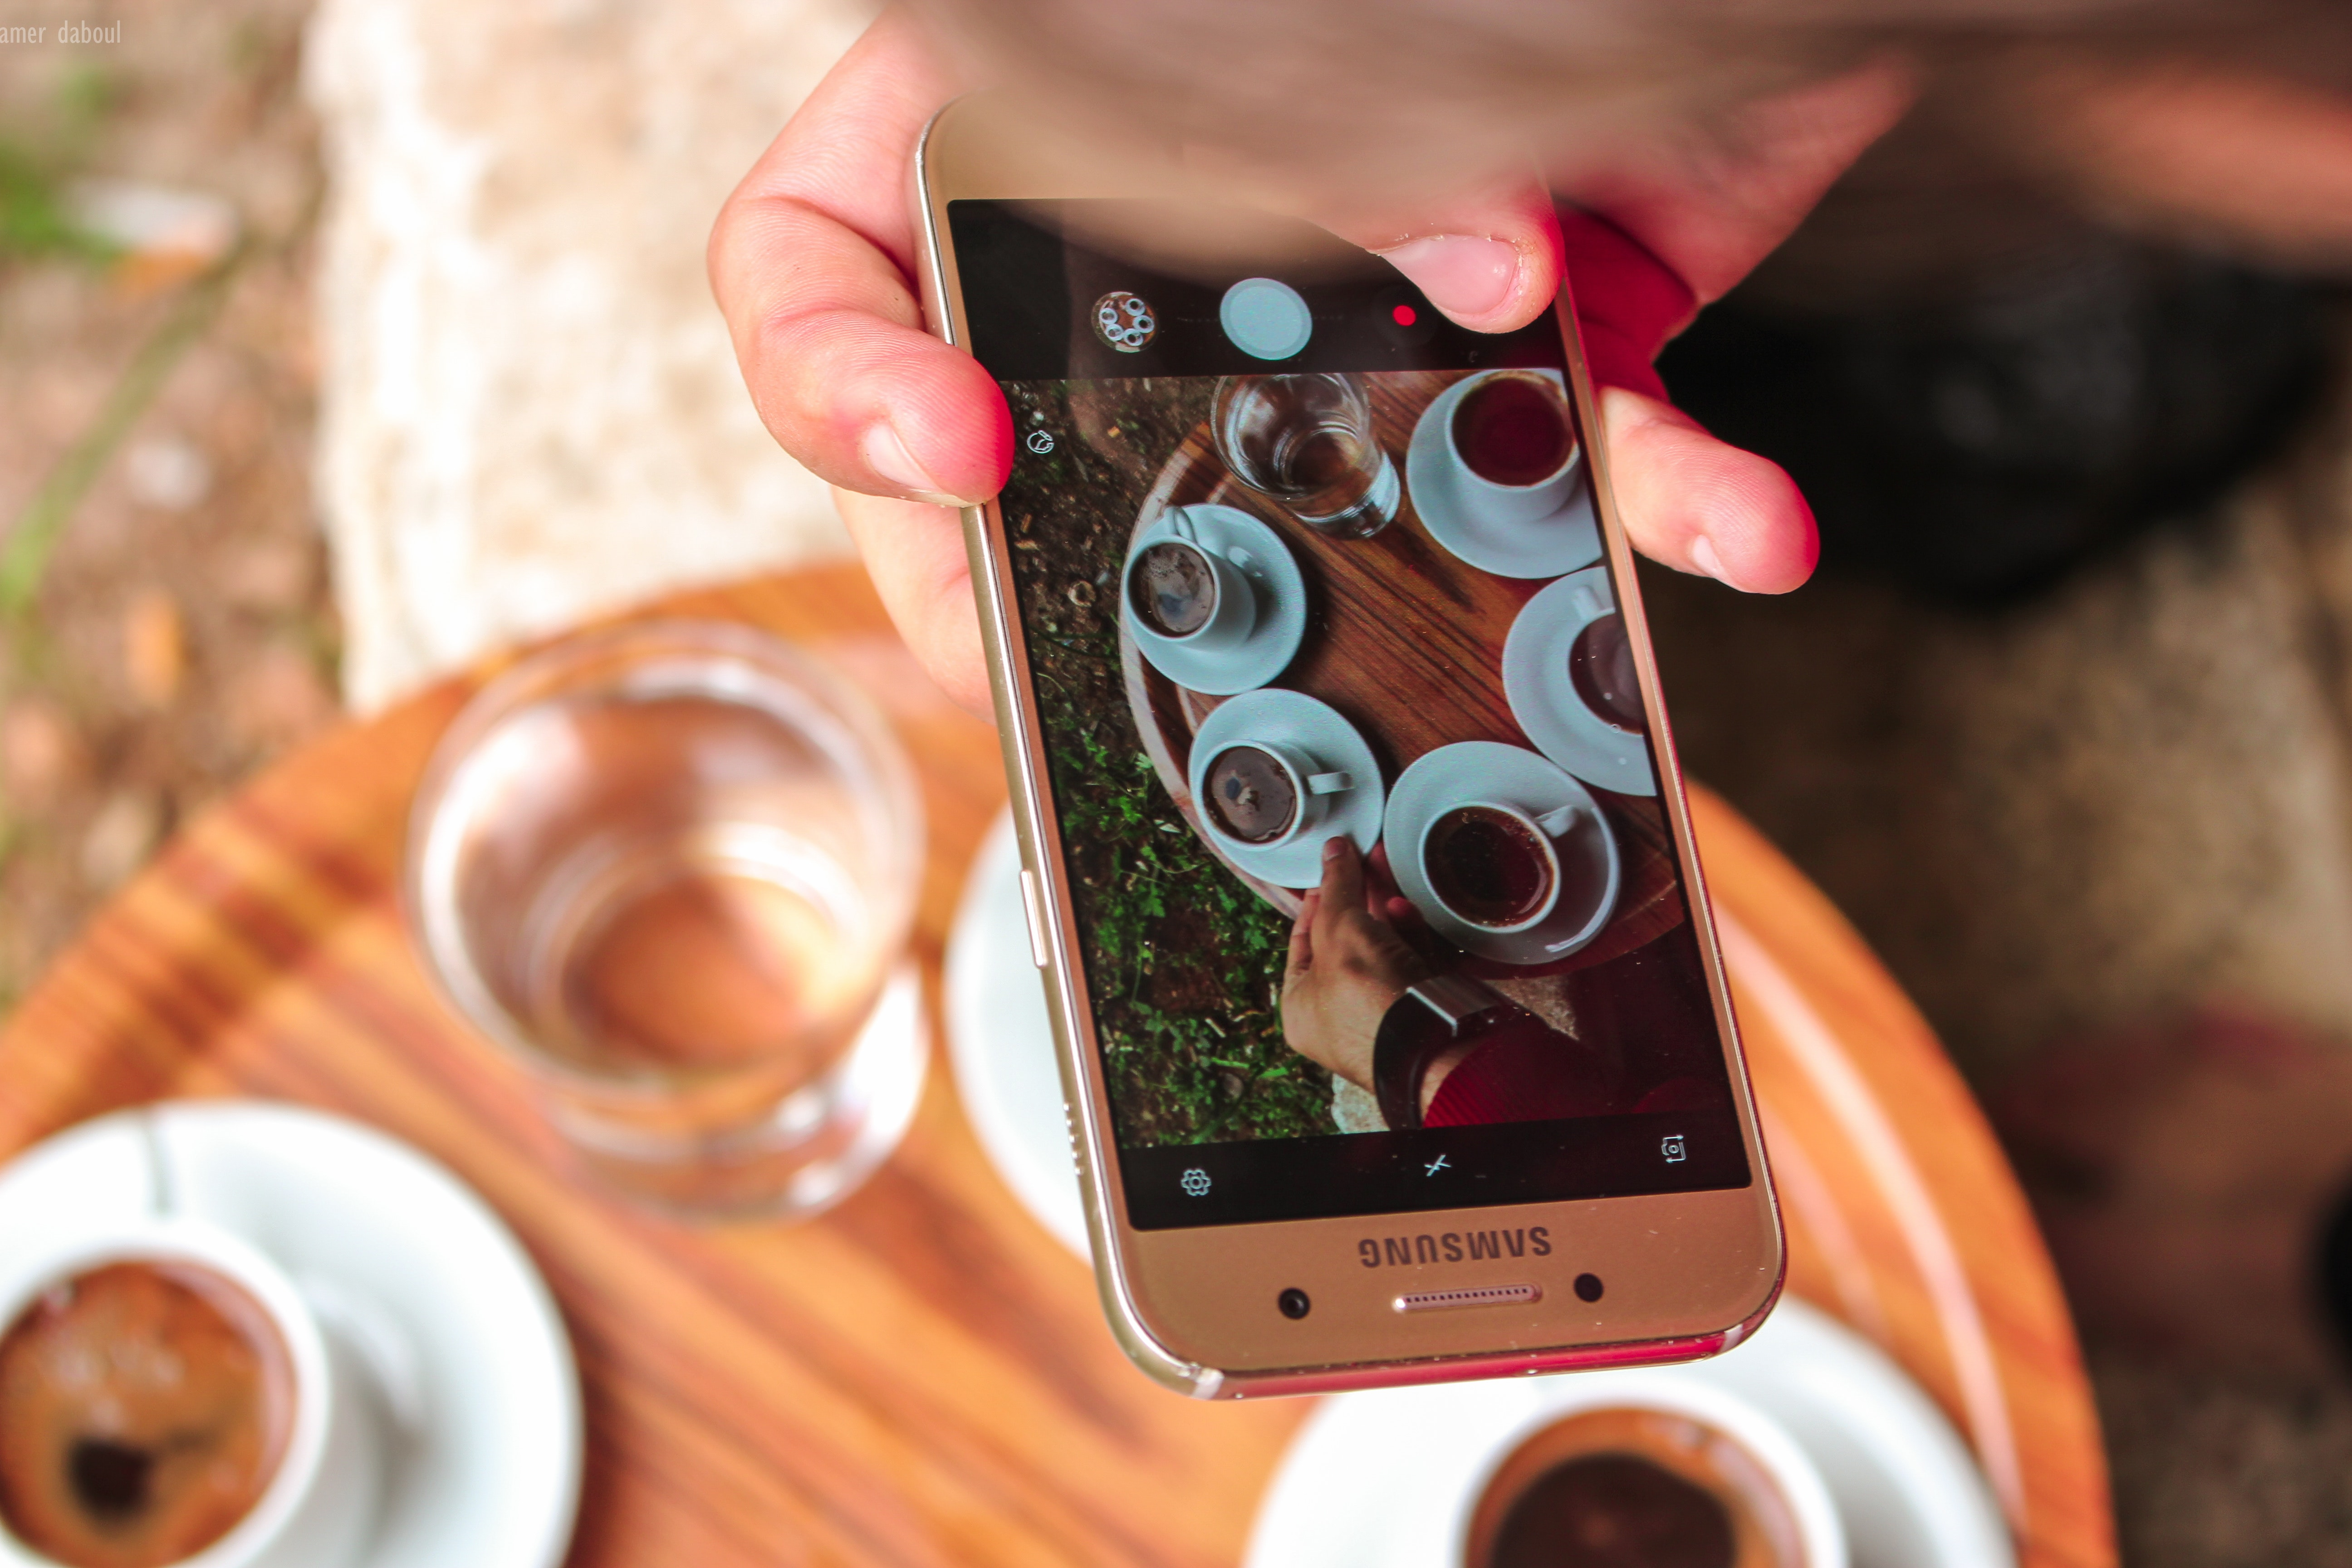 Person Holding a Samsung Galaxy Smartphone Taking a Picture on Their Coffees, Android, Phone, Wireless, Water, HQ Photo